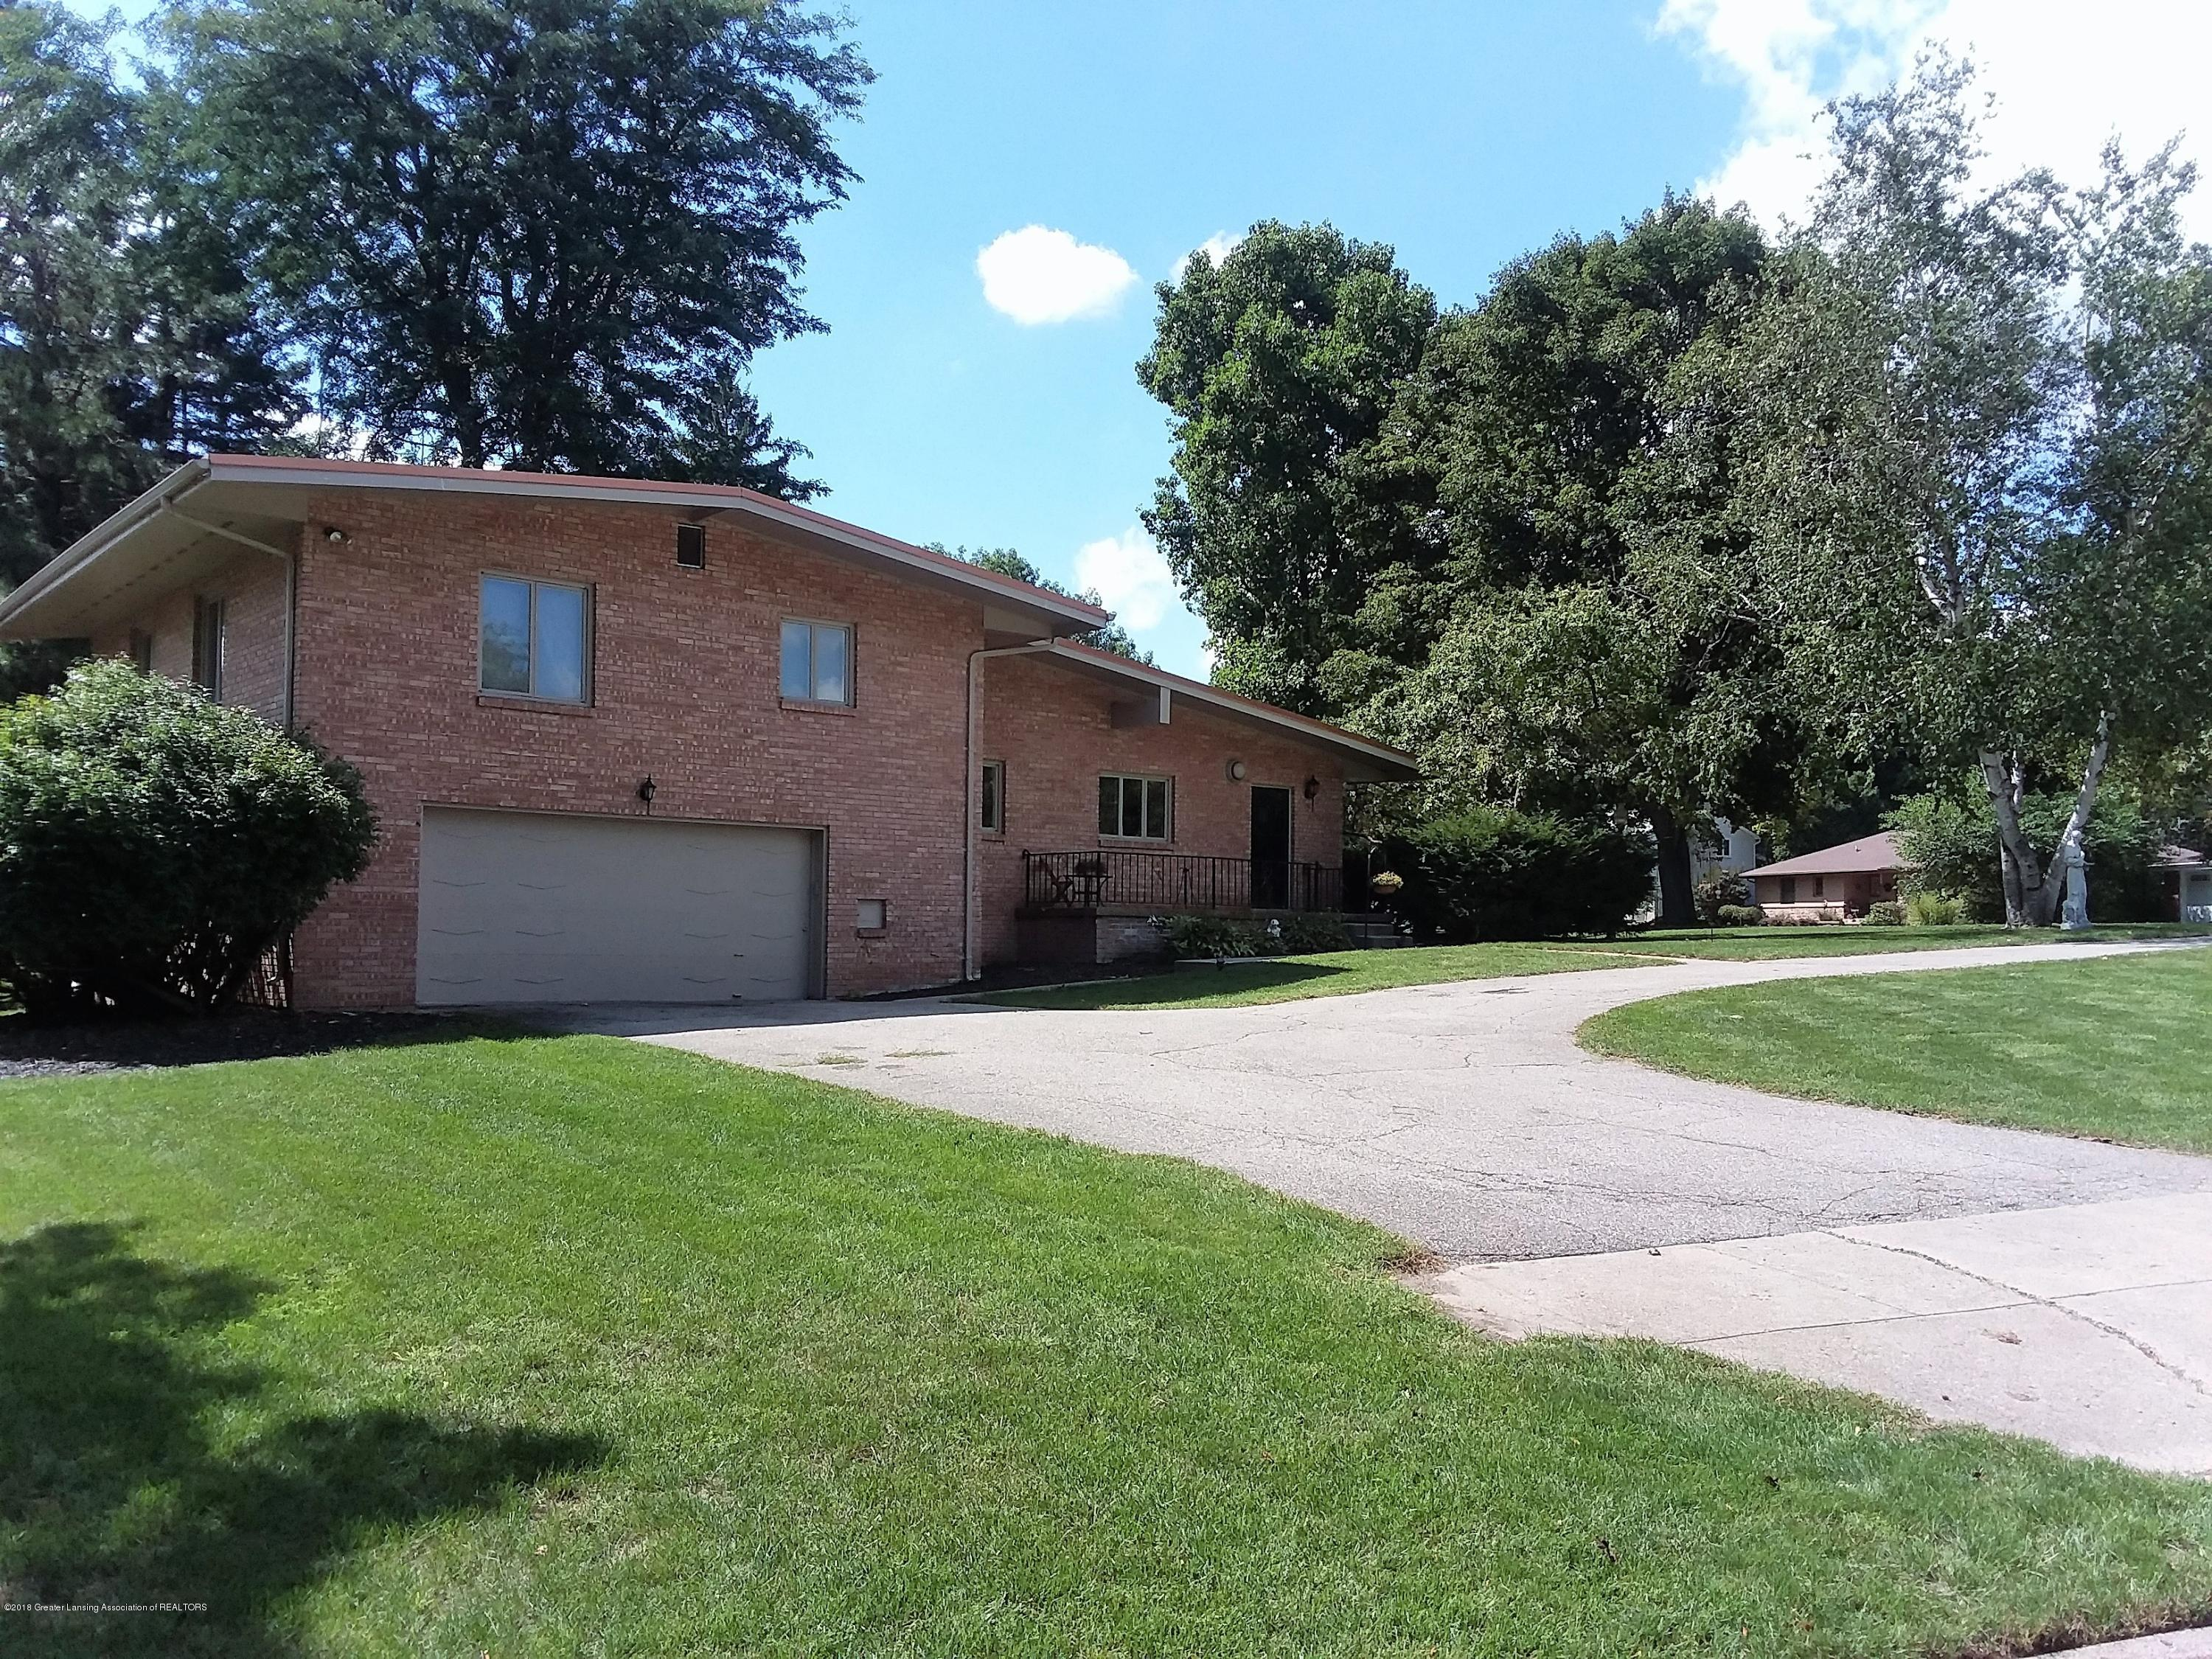 2839 Westchester Rd - front of house - 1